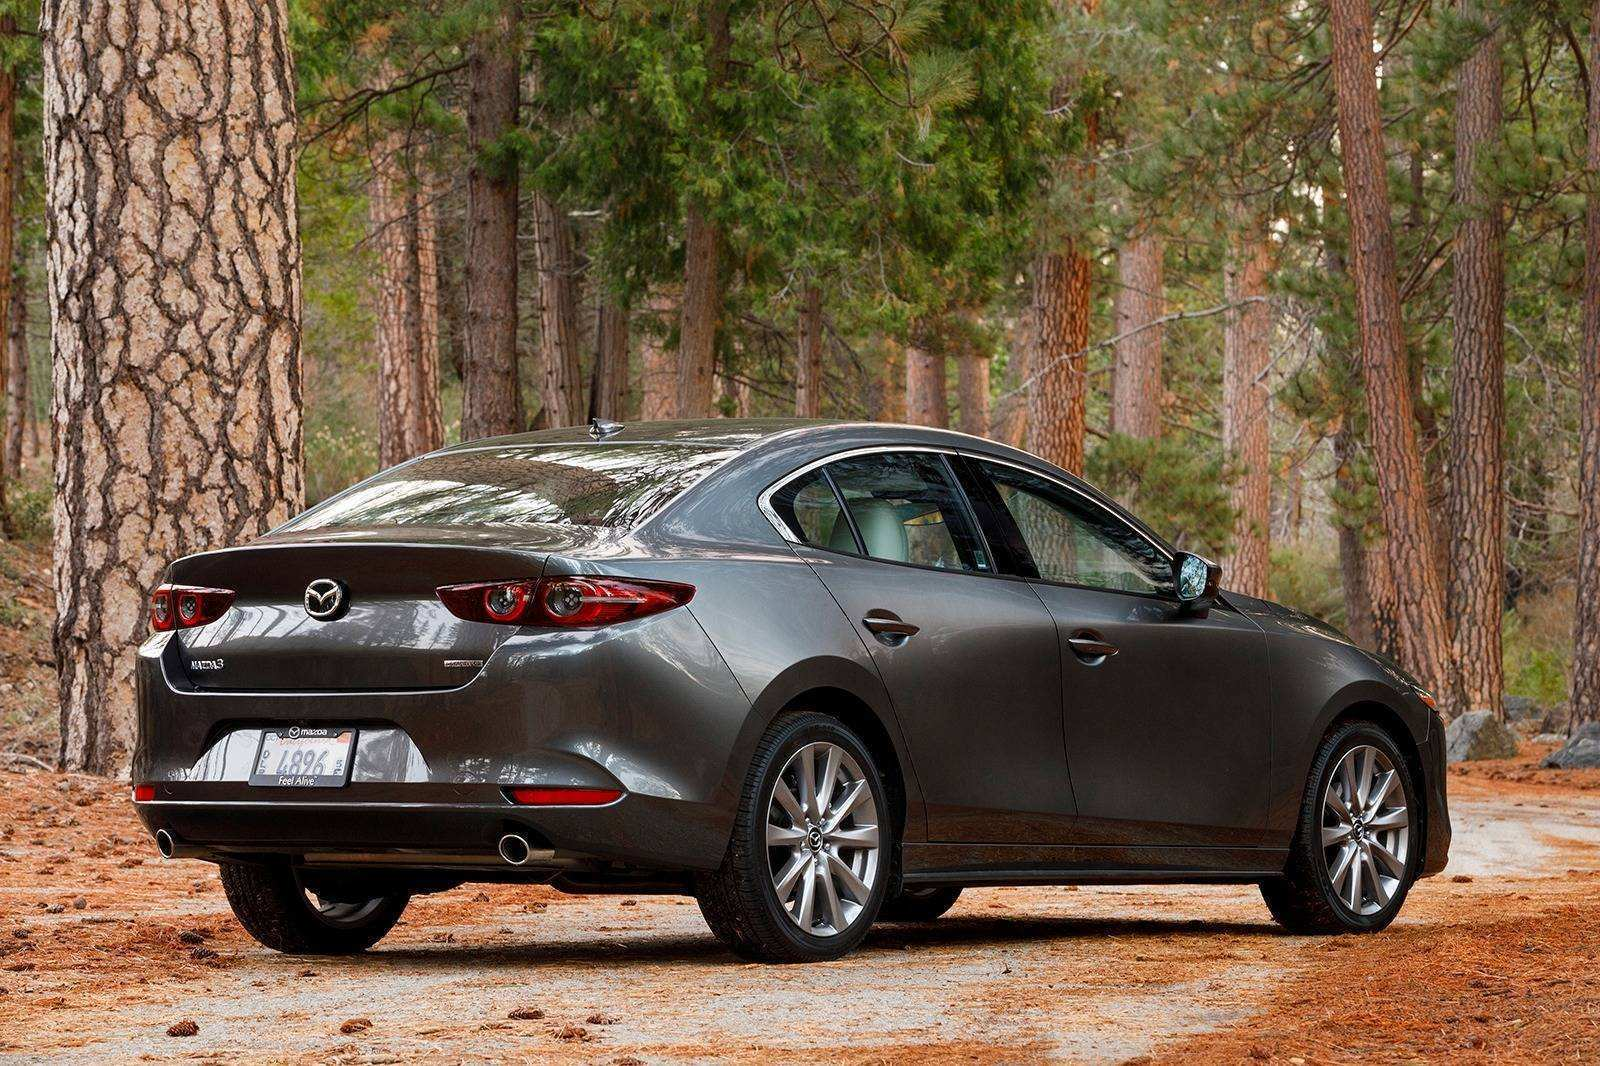 56 Best Review Best Mazda 3 2019 Price Release Date Price And Review Redesign for Best Mazda 3 2019 Price Release Date Price And Review